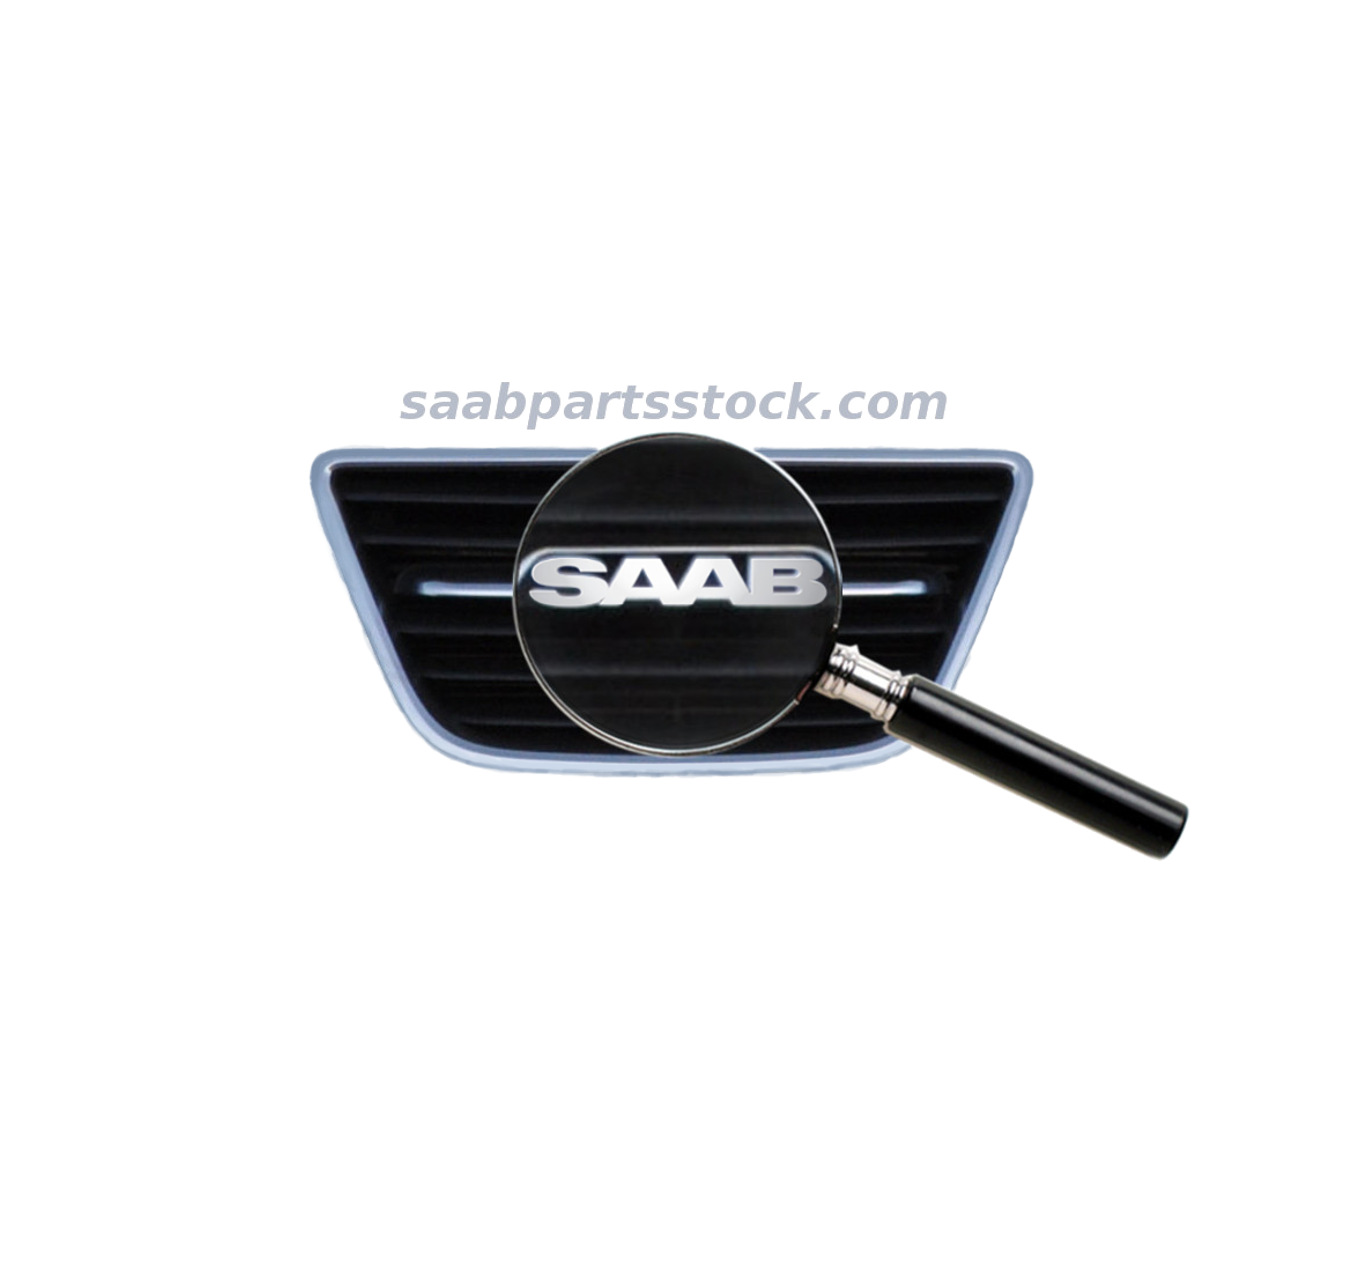 SAAB spare parts and accessories, everything that relates to SAAB